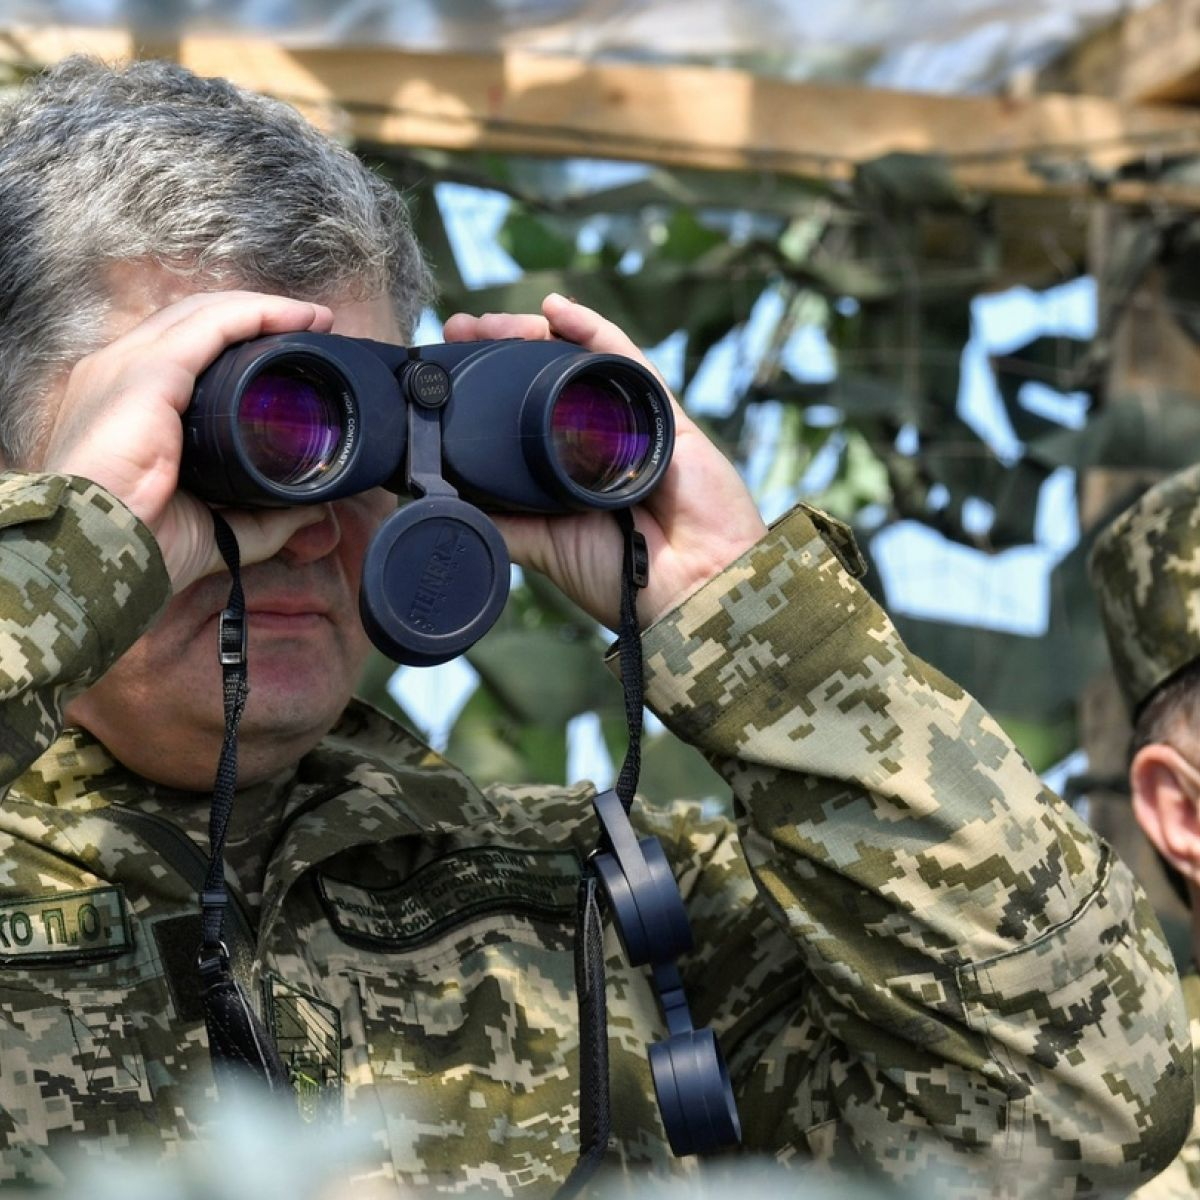 British military: Ukrainian security forces can neither shoot nor command